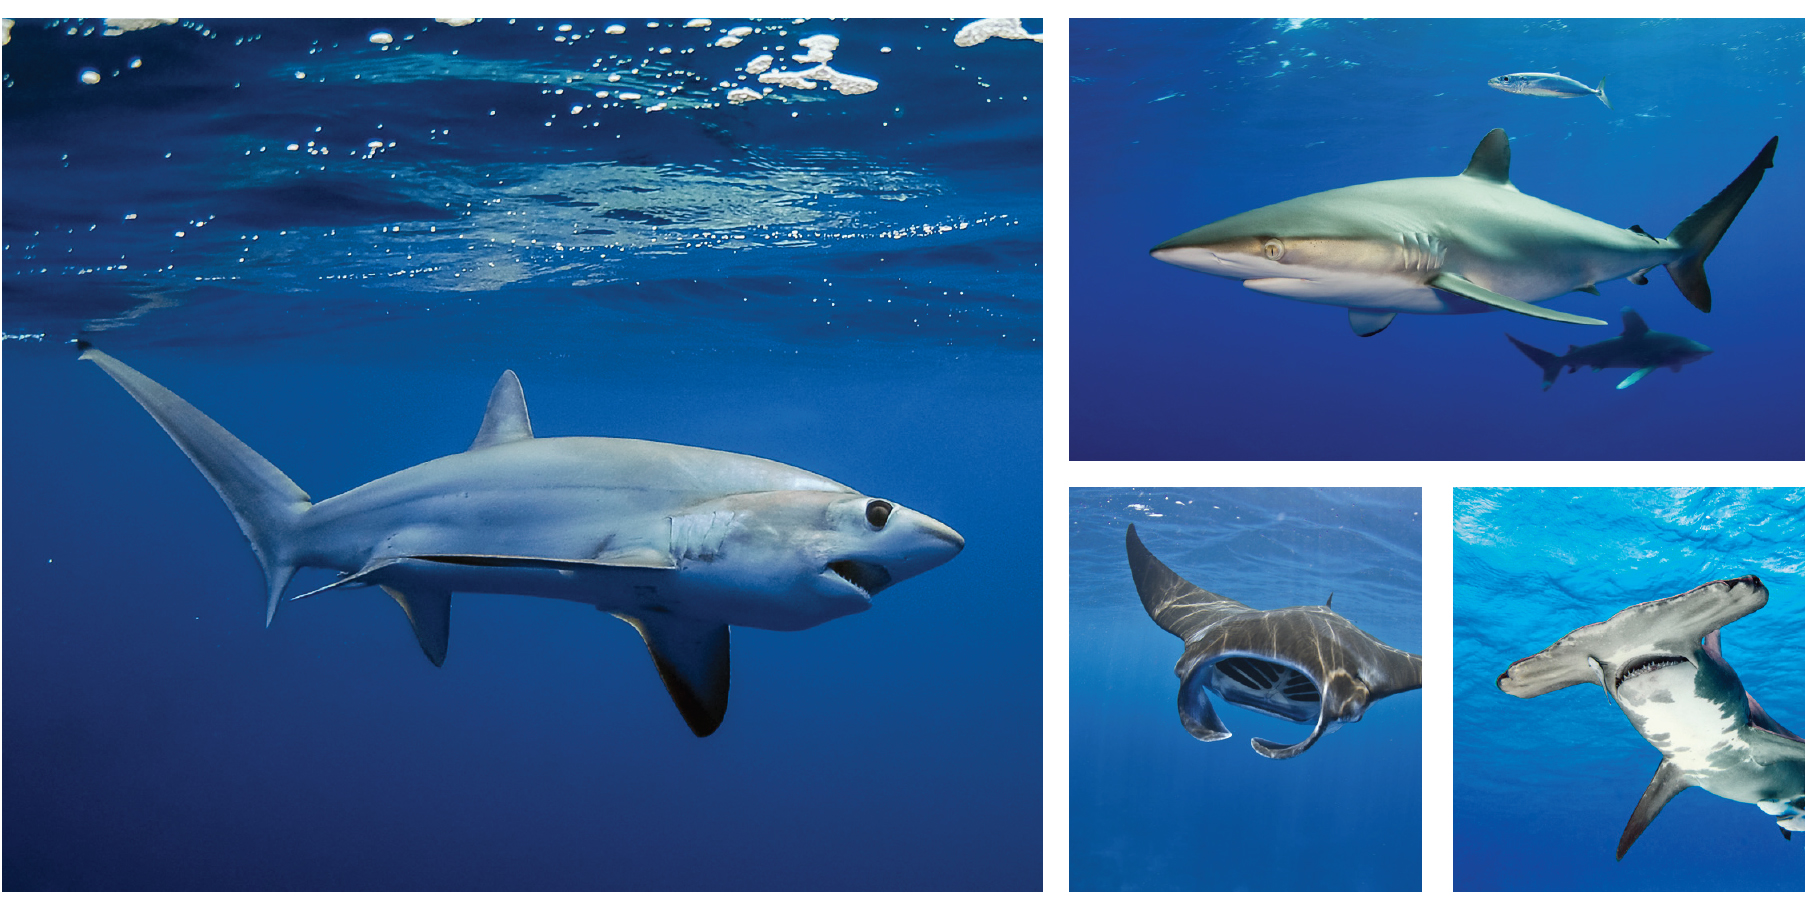 1. Thresher shark/Jason Arnold 2. Silky shark/Jim Abernethy 3. Manta ray/Getty Images 4. Hammerhead shark/Getty Images